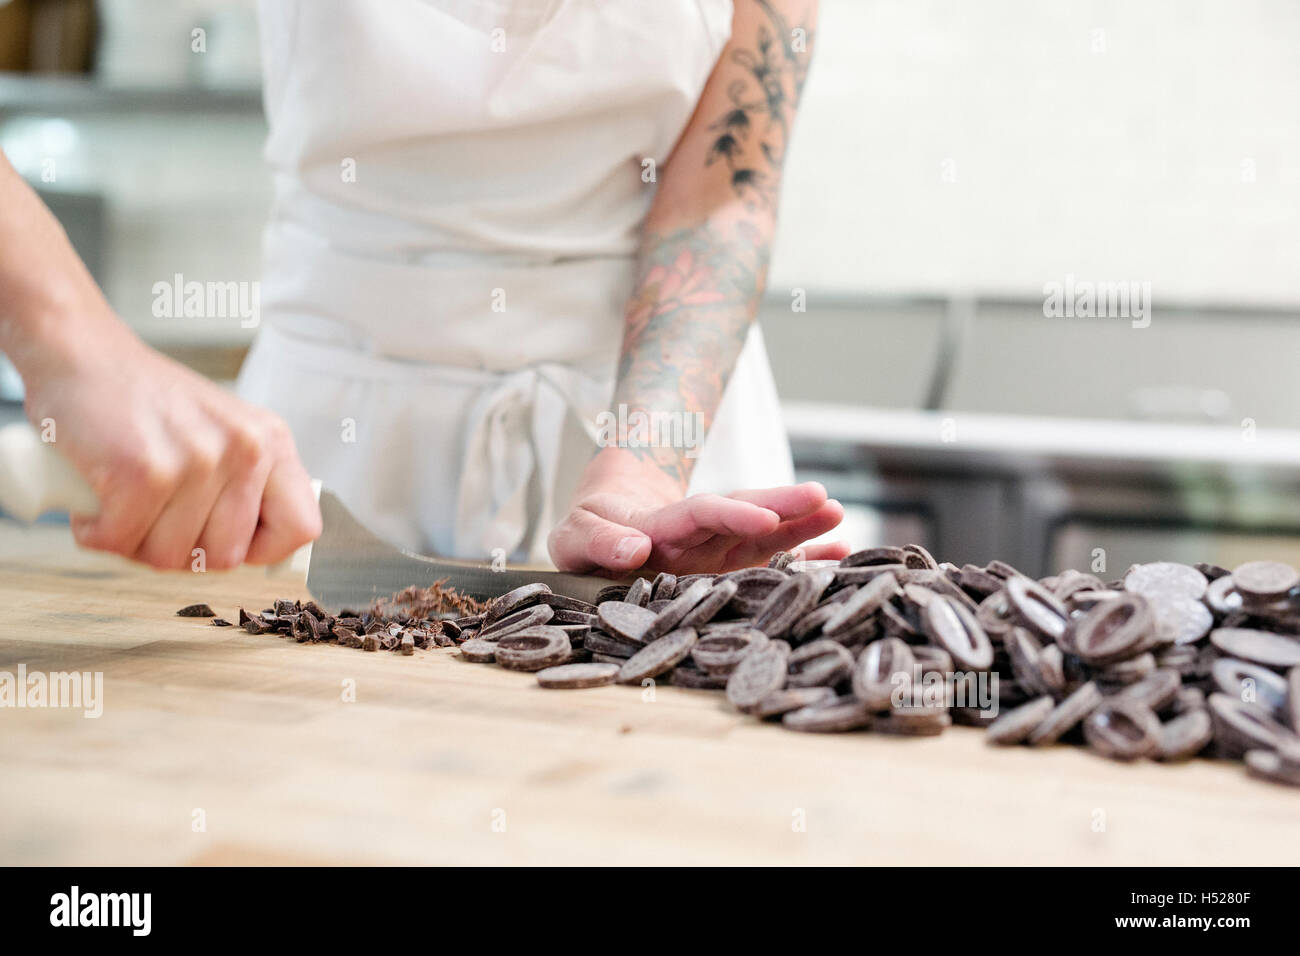 Close up of a woman wearing a white apron at a work counter in a bakery, chopping chocolate. - Stock Image